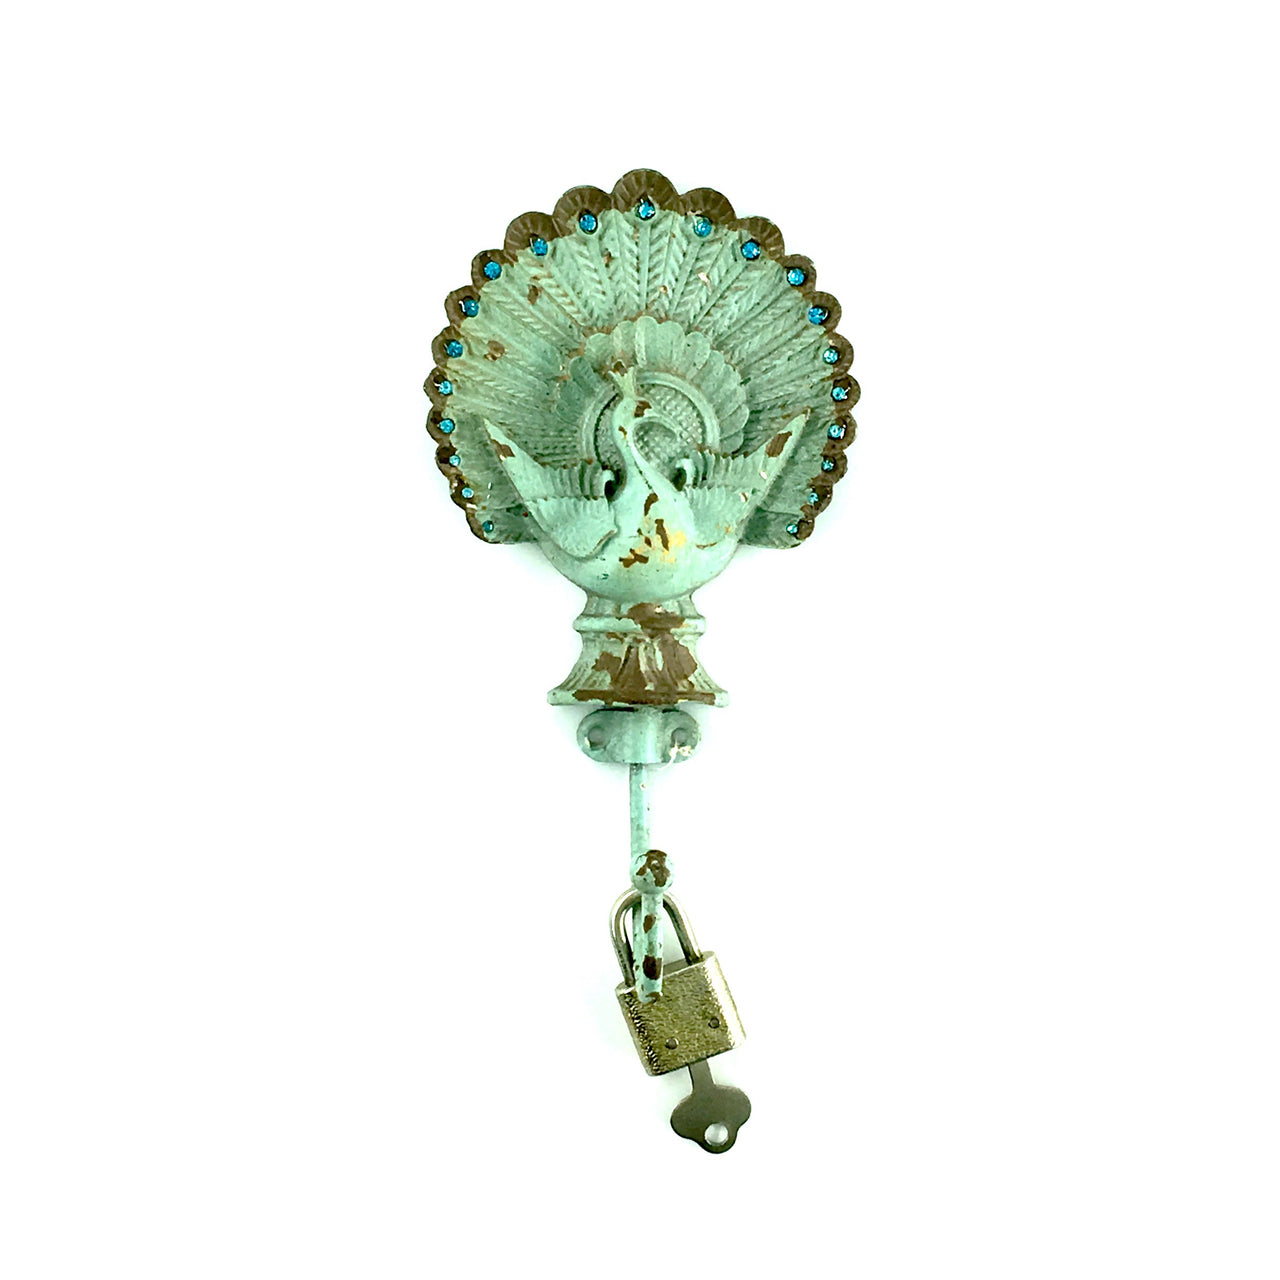 Antiqued Peacock Wall Hook shown holding Padlock